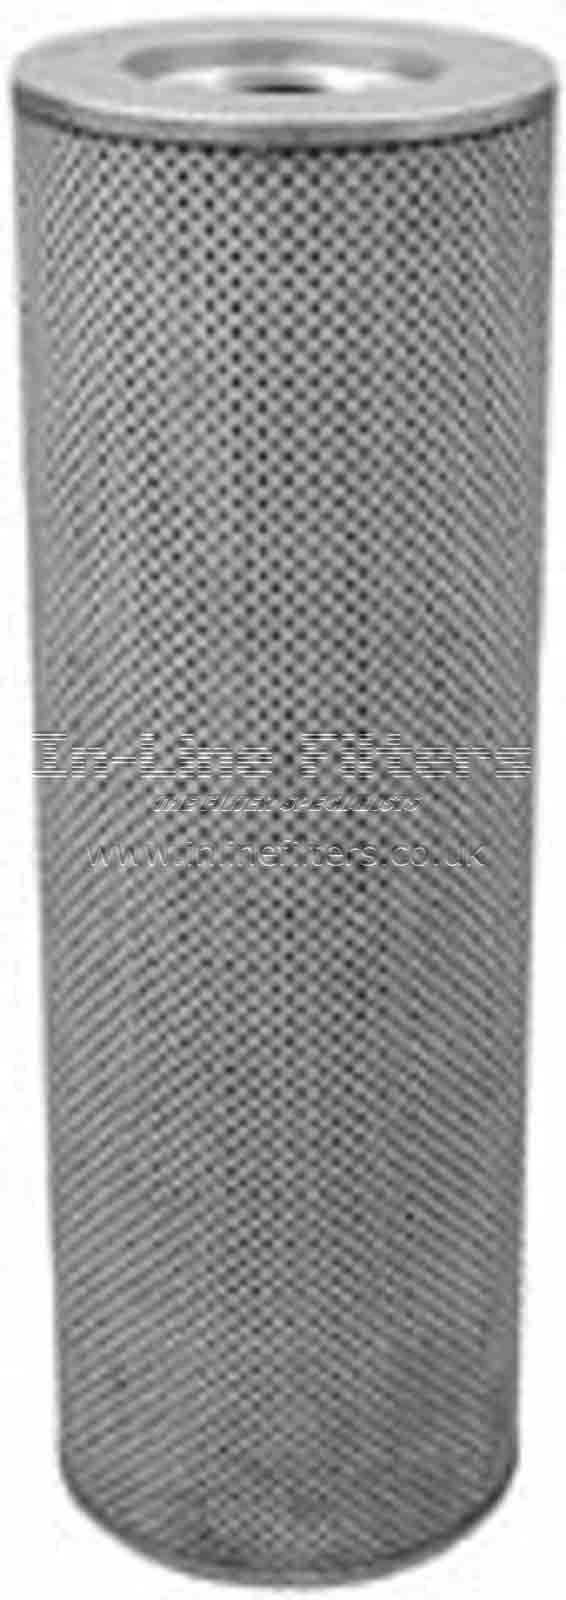 FBW-PT8491 FILTER-Hydraulic(Brand Specific-Baldwin PT8491) - Click Image to Close